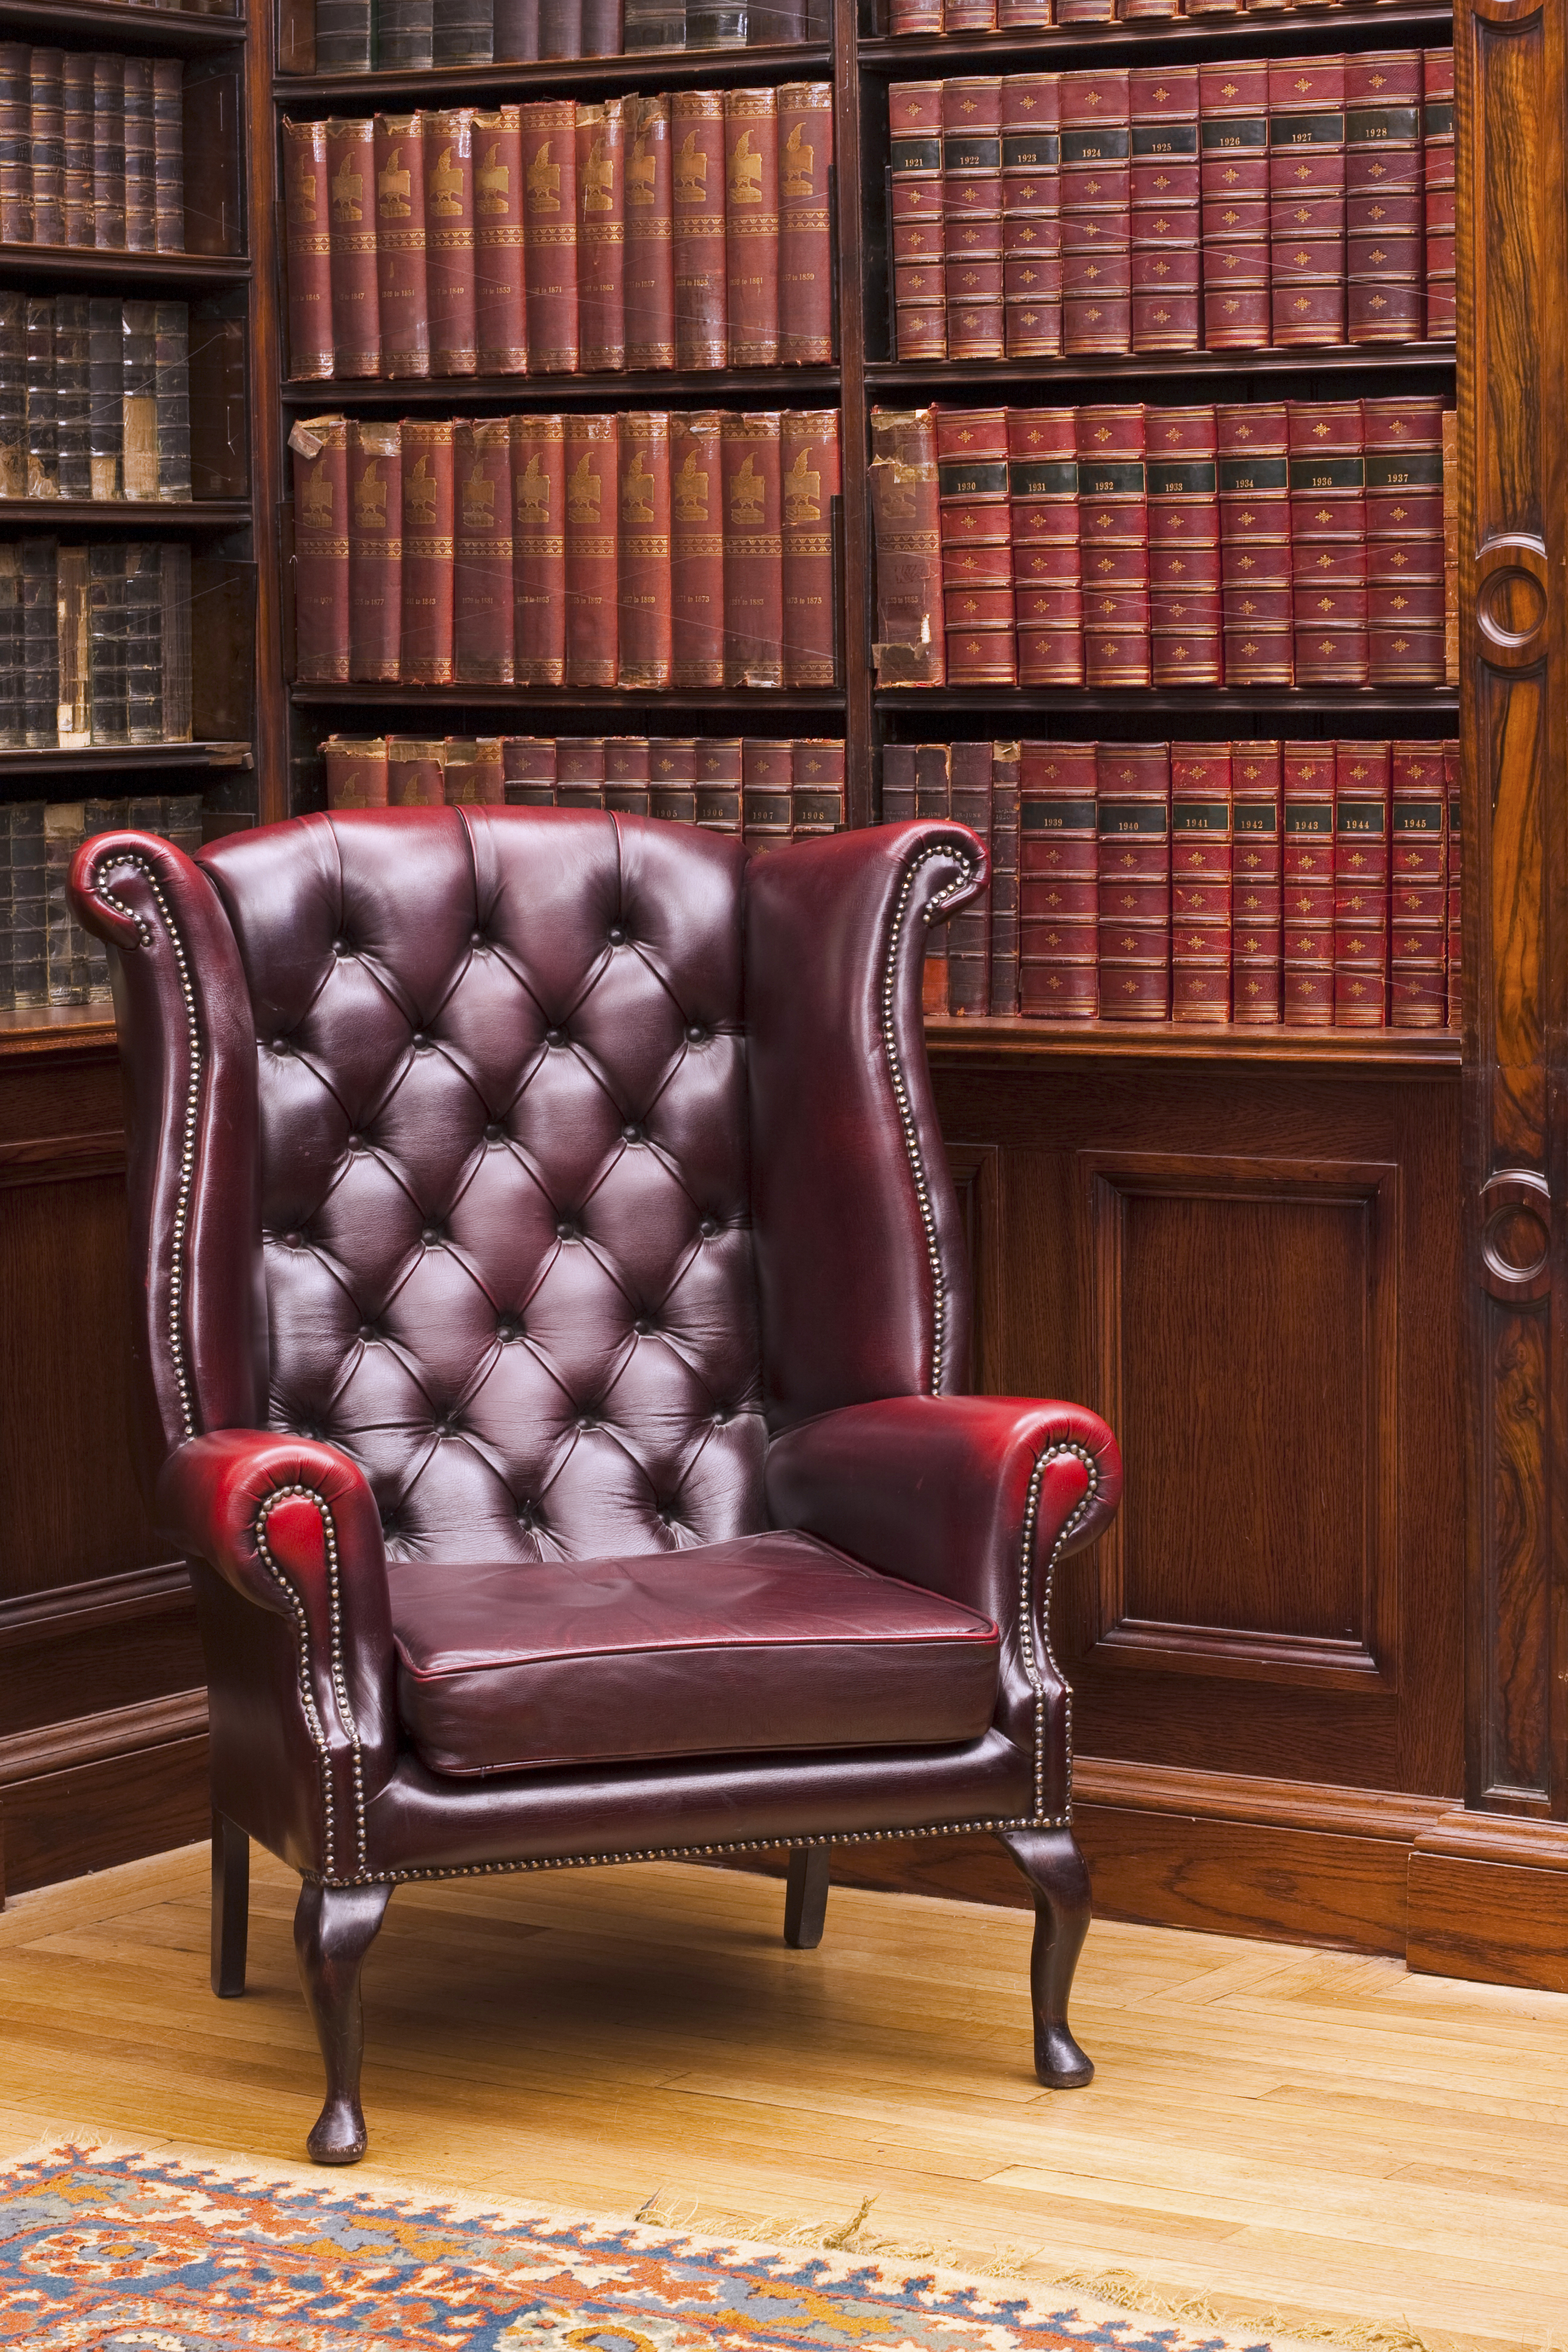 Traditional Chesterfield chair in classical library room